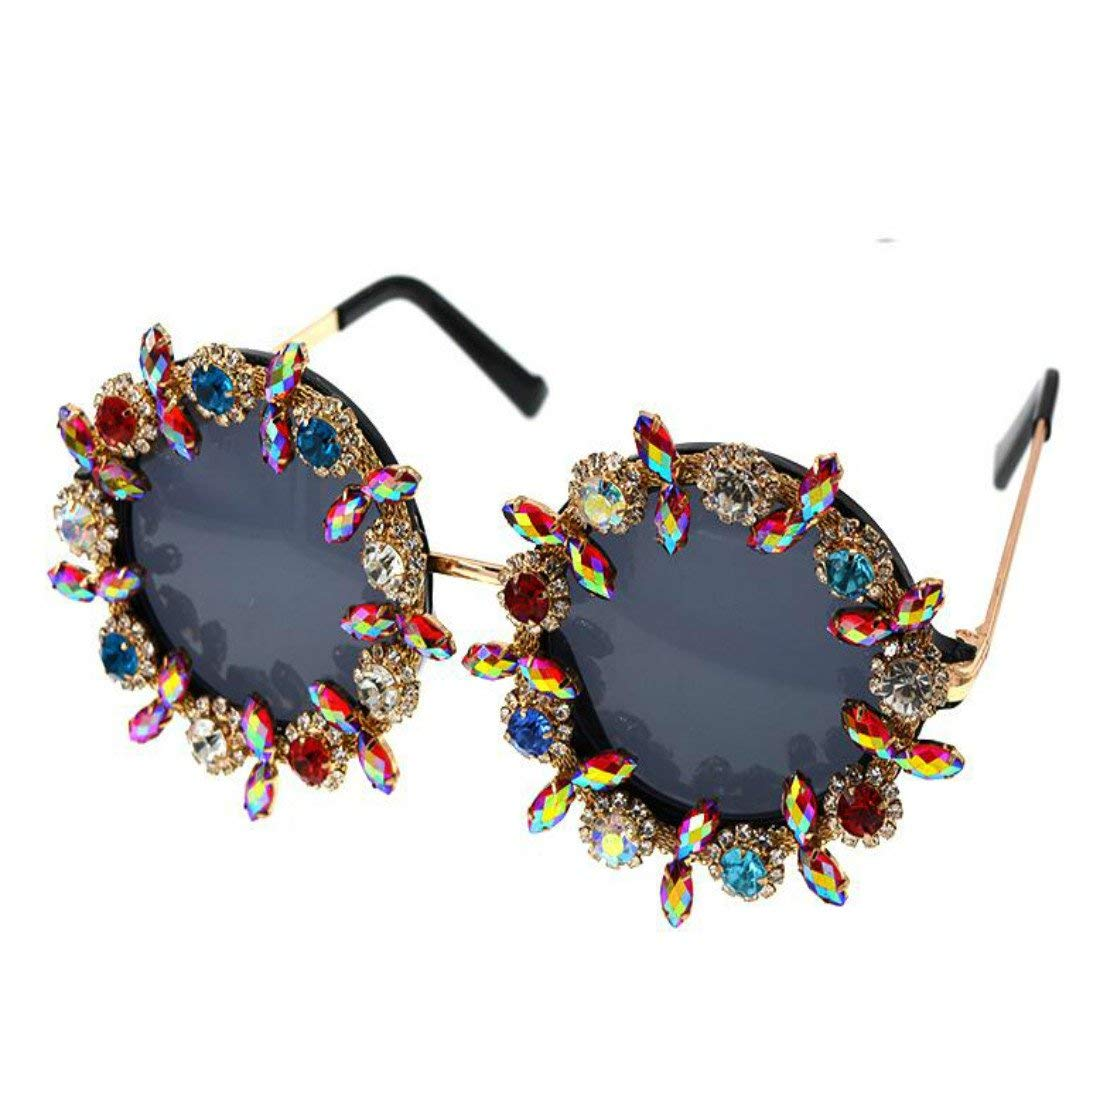 bcc3e021145 Colygamala Women s Baroque Retro Sunglasses Colorful Crystal Decoration  Conjoined Sunglasses With Case